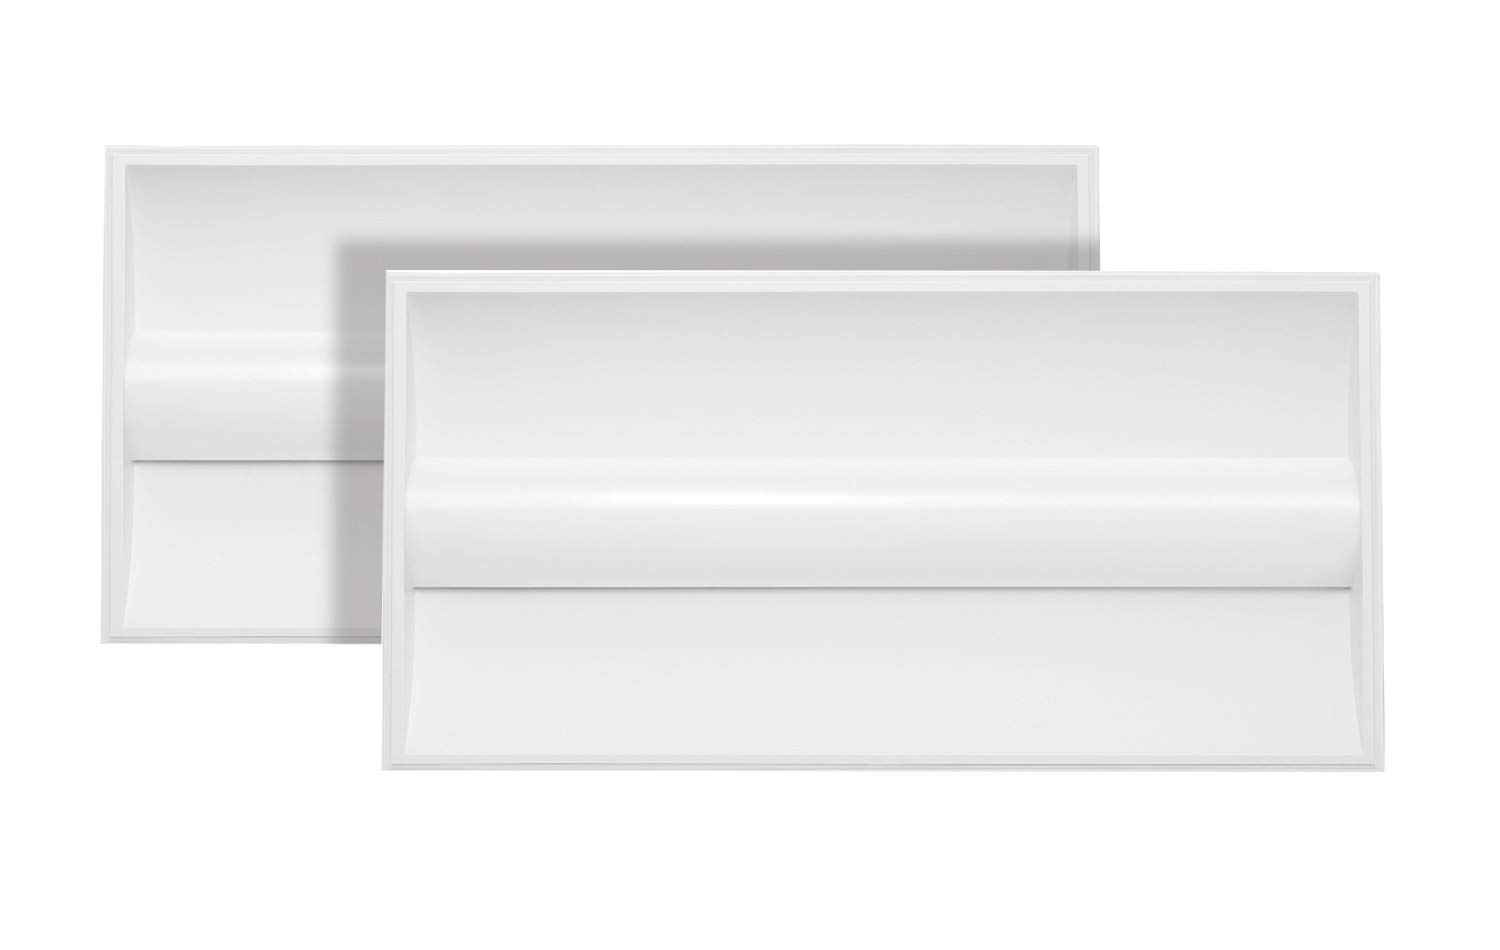 2-Pack Neox LED Architectural Troffer 2x4 Dimmable Panel, Volumetric Troffer, 35W 4320lm 4000K (Bright Light), Commercial Grade, UL Listed DLC Certified